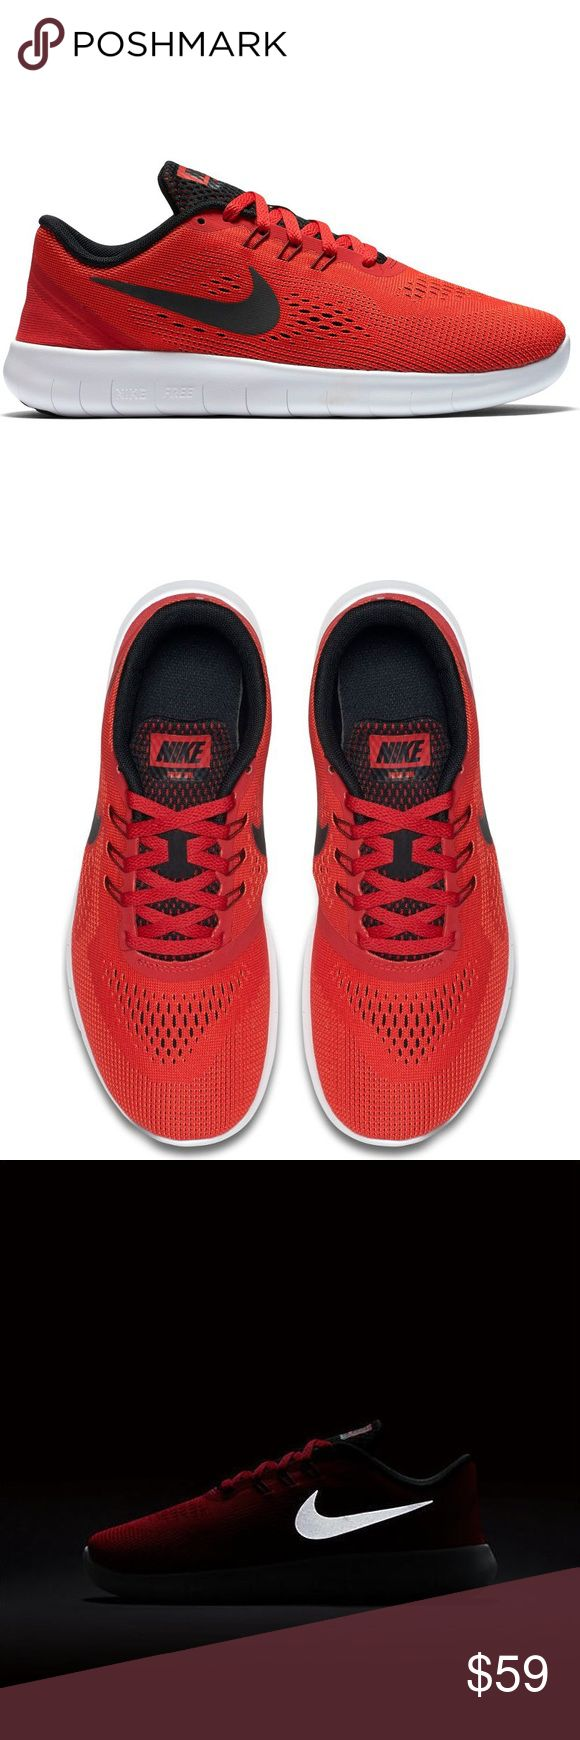 Nike free run red black white Womens shoes new Brand new without box. Shoes are a size 6 youth which converts into a women's size 7.5. I have added a size chart for reference. 100% authentic. Ships same day or very next. Nike Shoes Sneakers